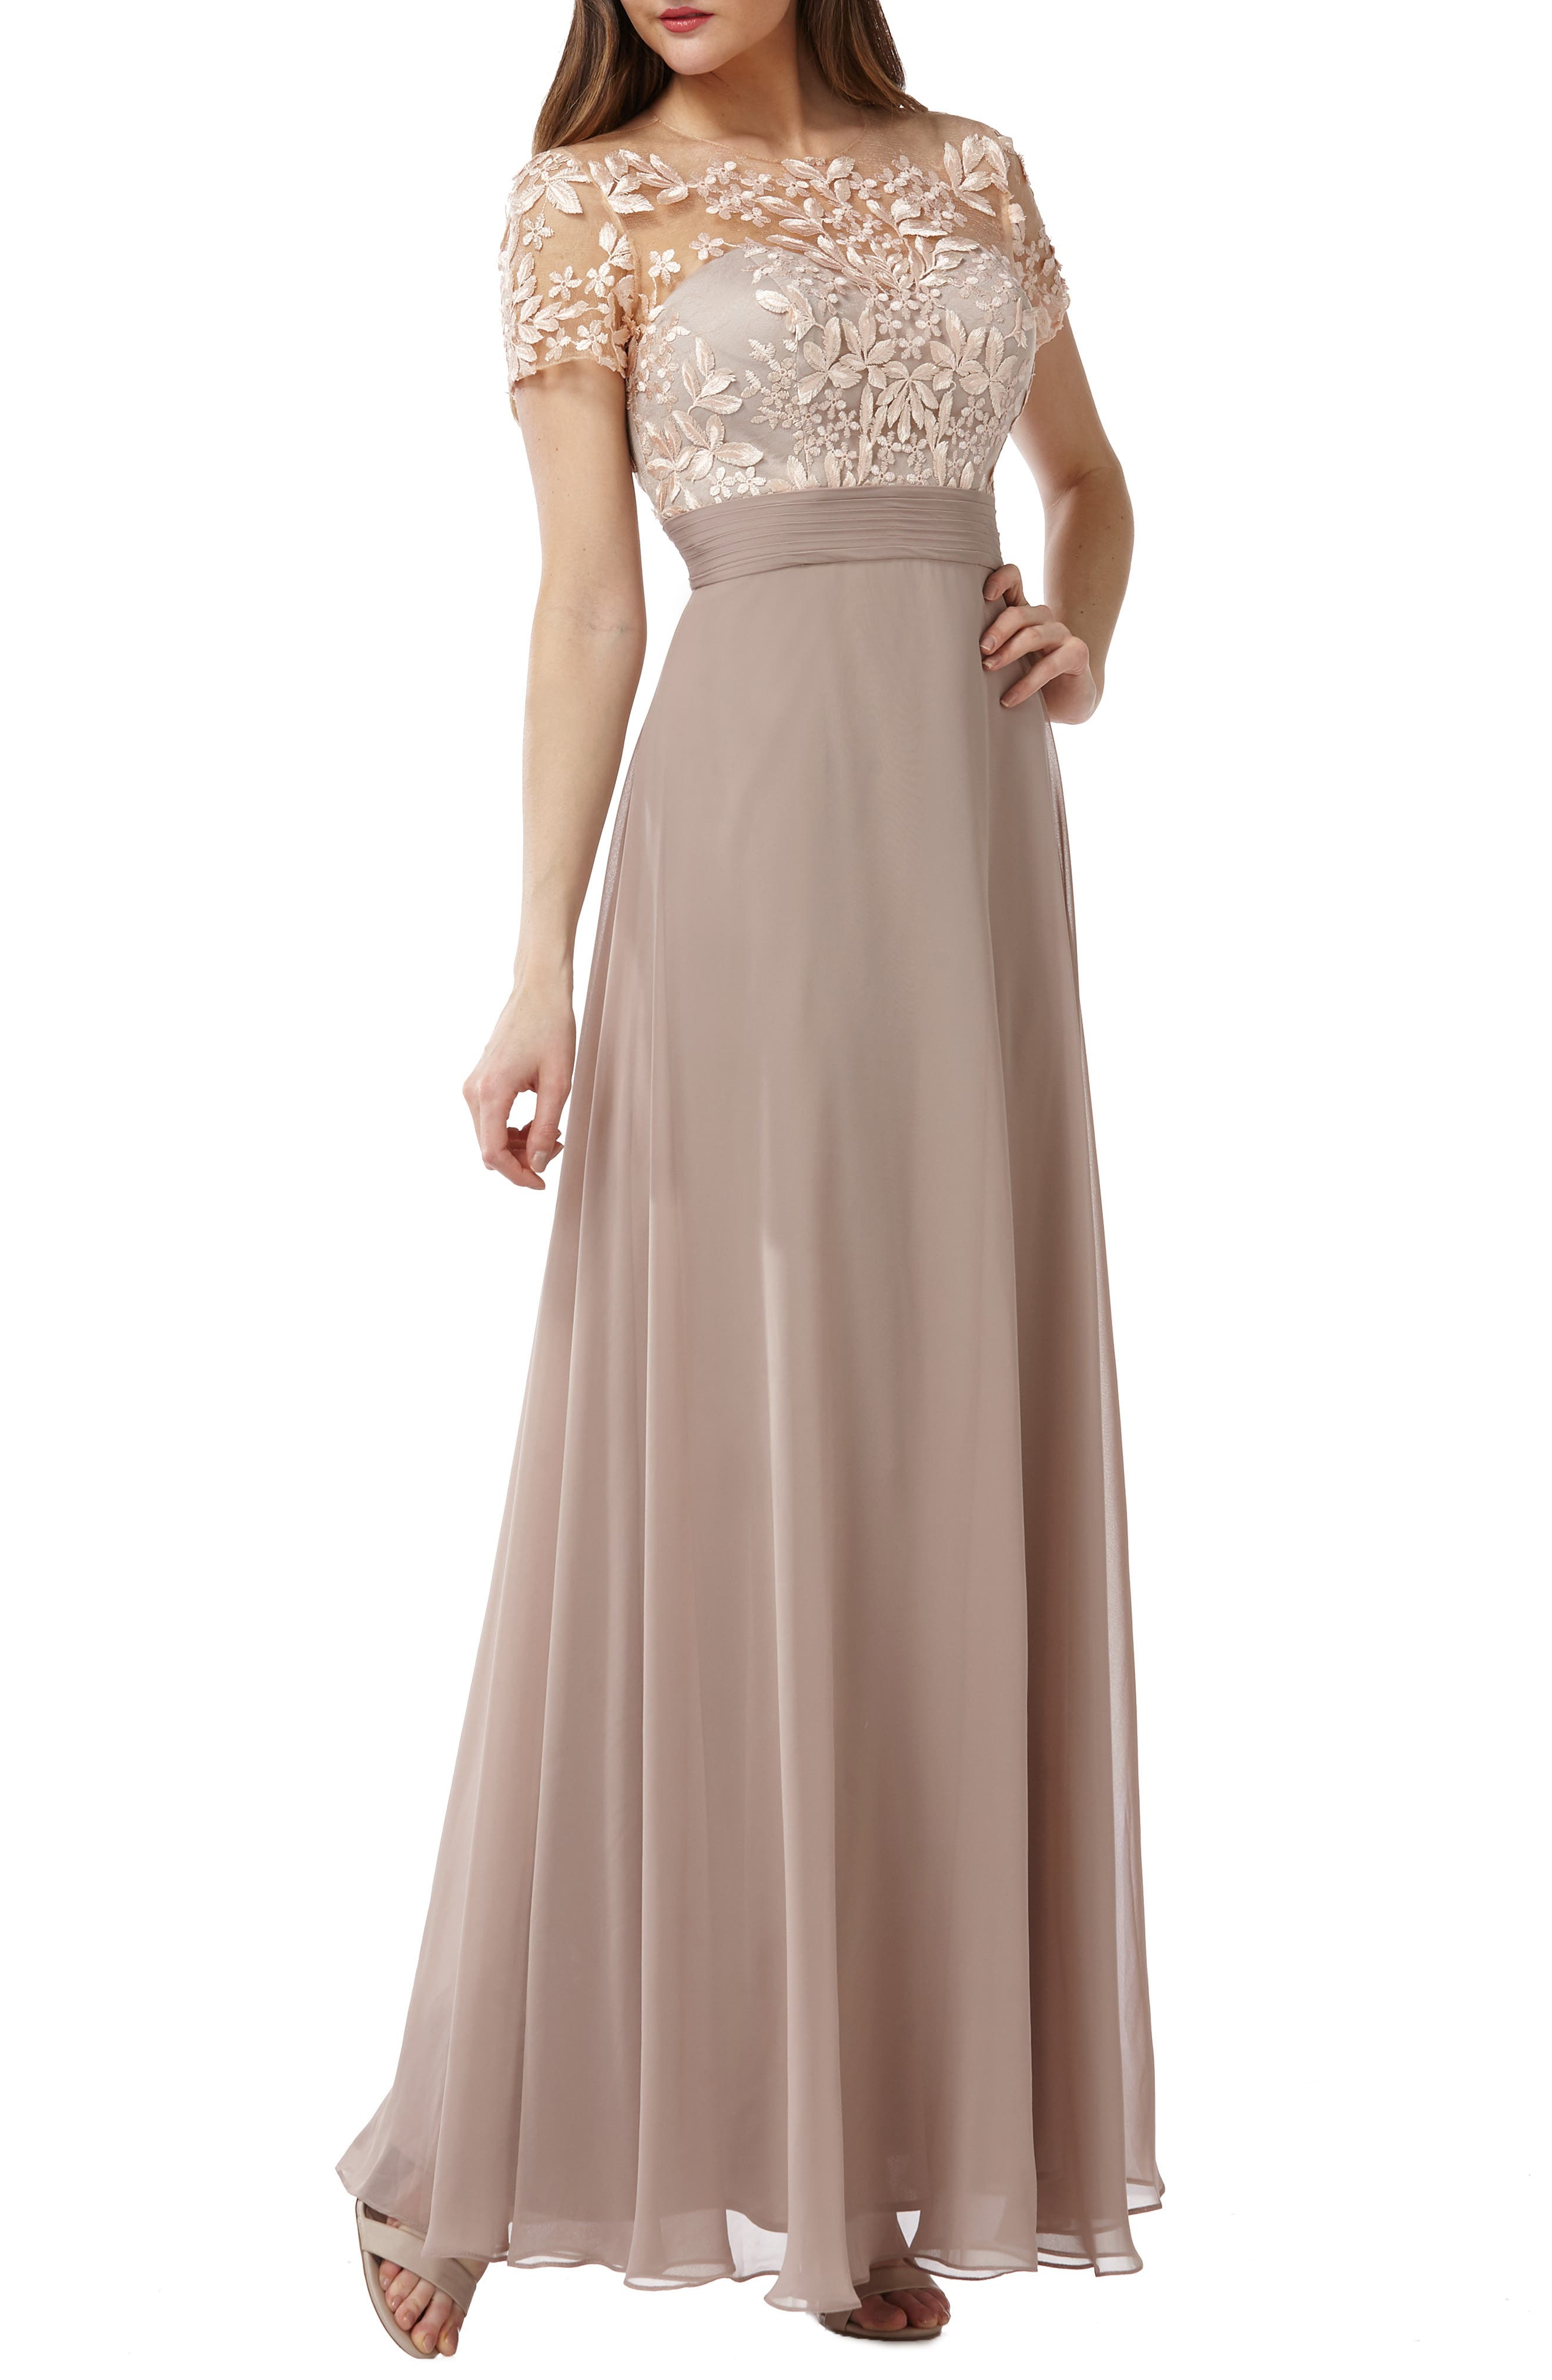 Embroidered Illusion Bodice Gown,                             Main thumbnail 1, color,                             BLUSH/ NUDE